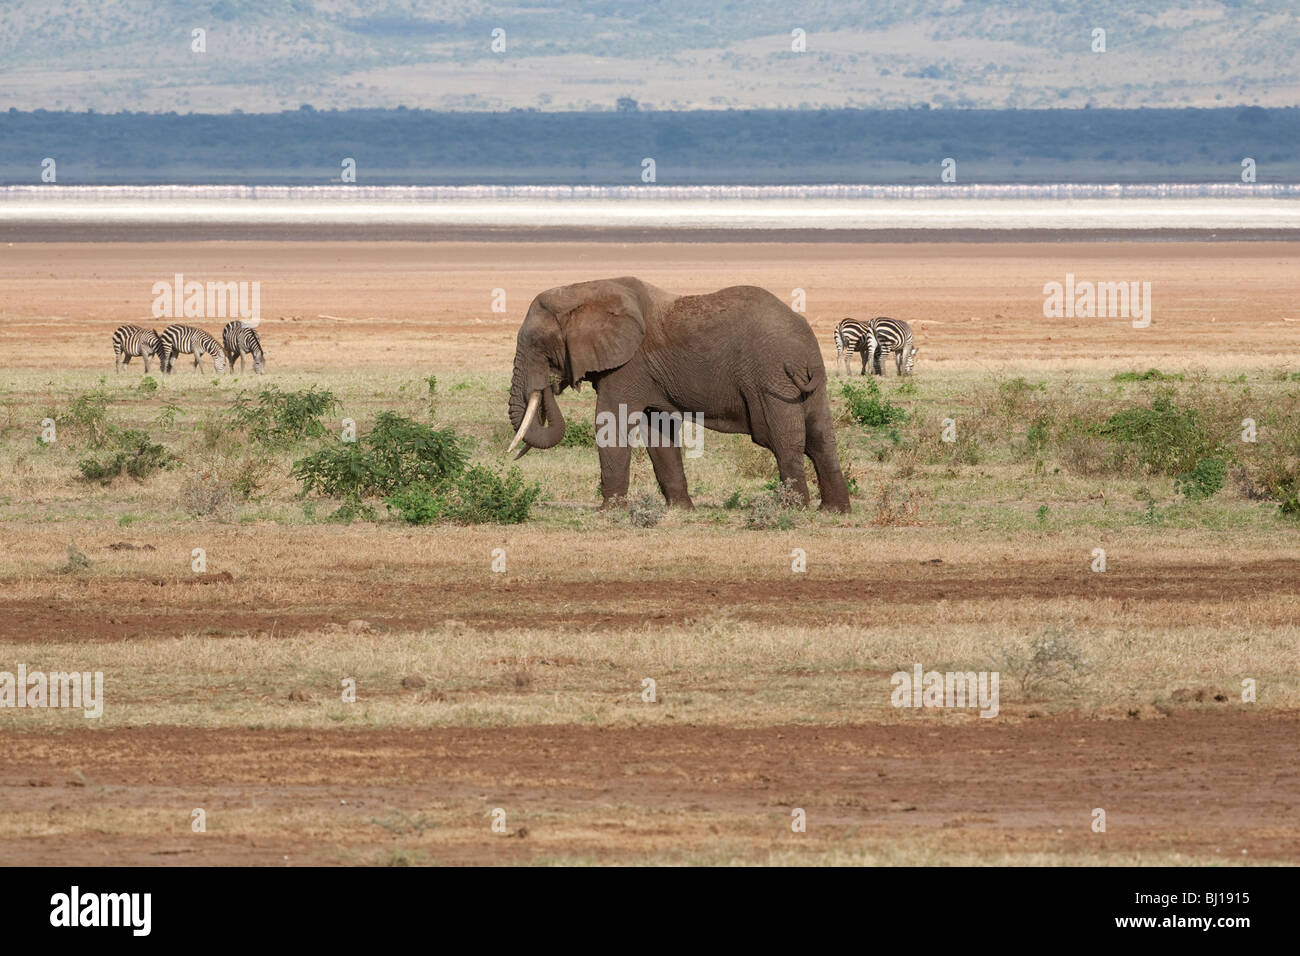 African Elephant and Zebra grazing on the plains of Lake Manyara, Tanzania - Stock Image